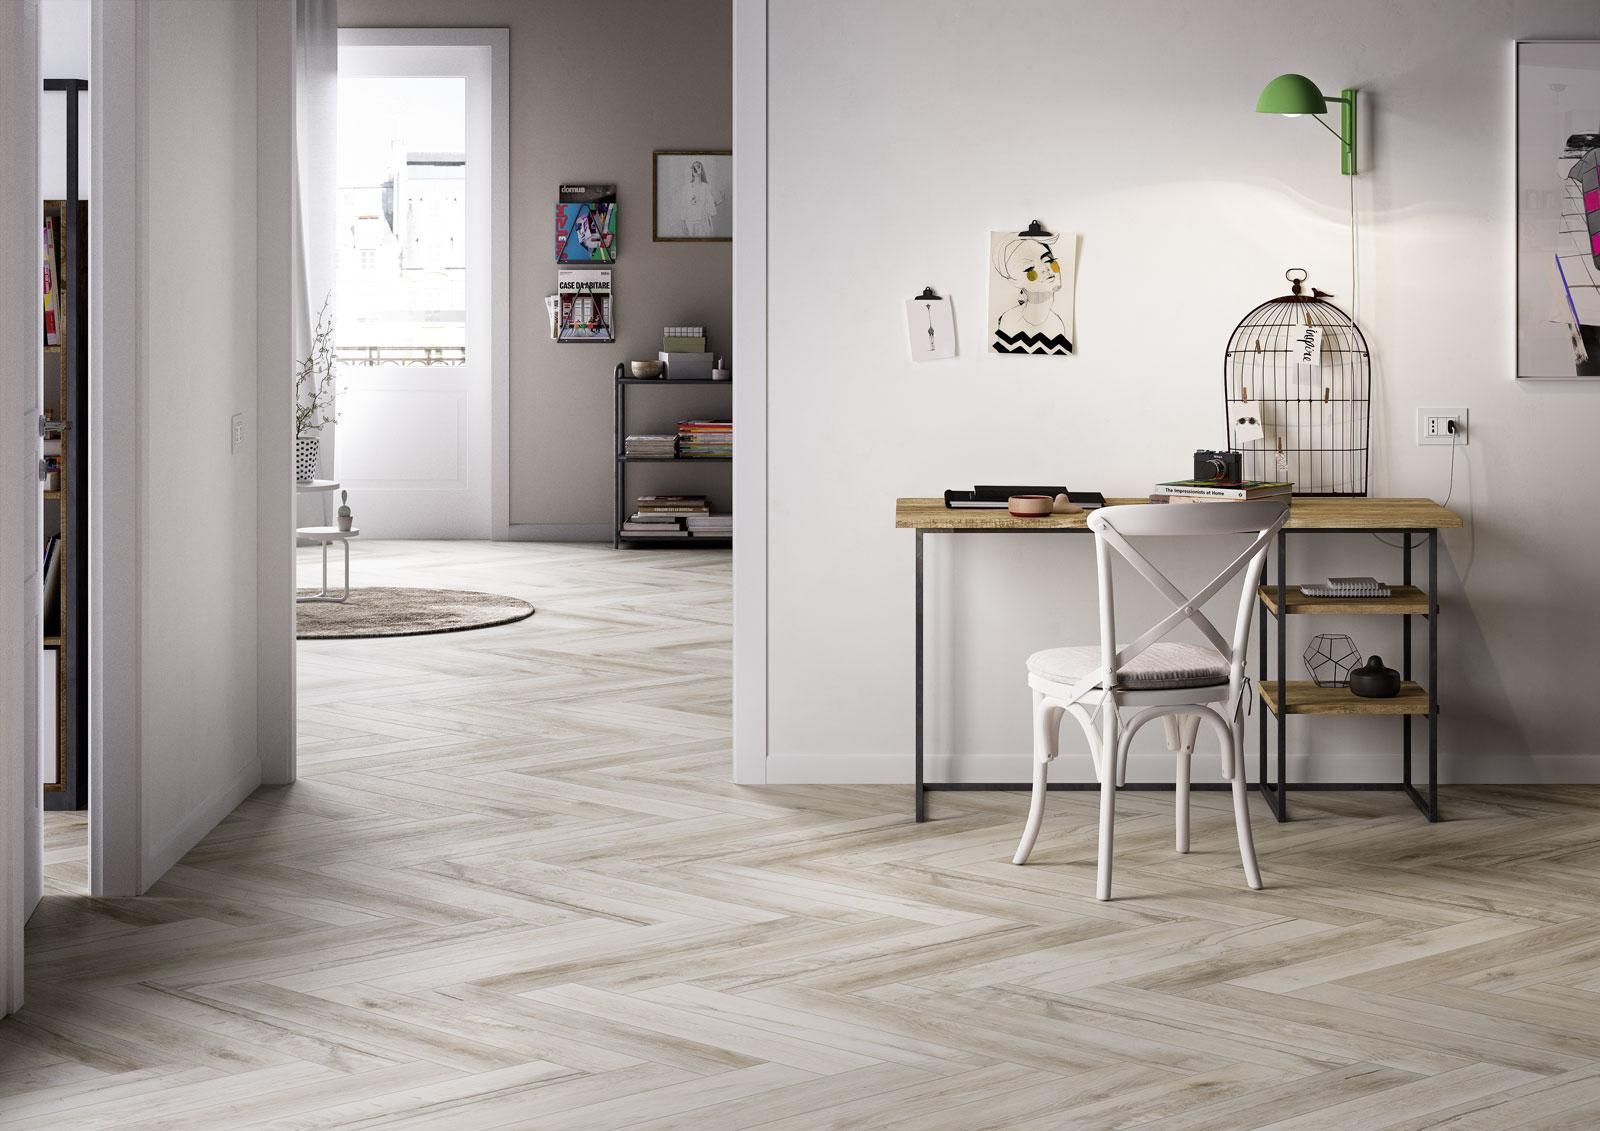 Italian Tiles for Houses and Home Rooms in Sri Lanka